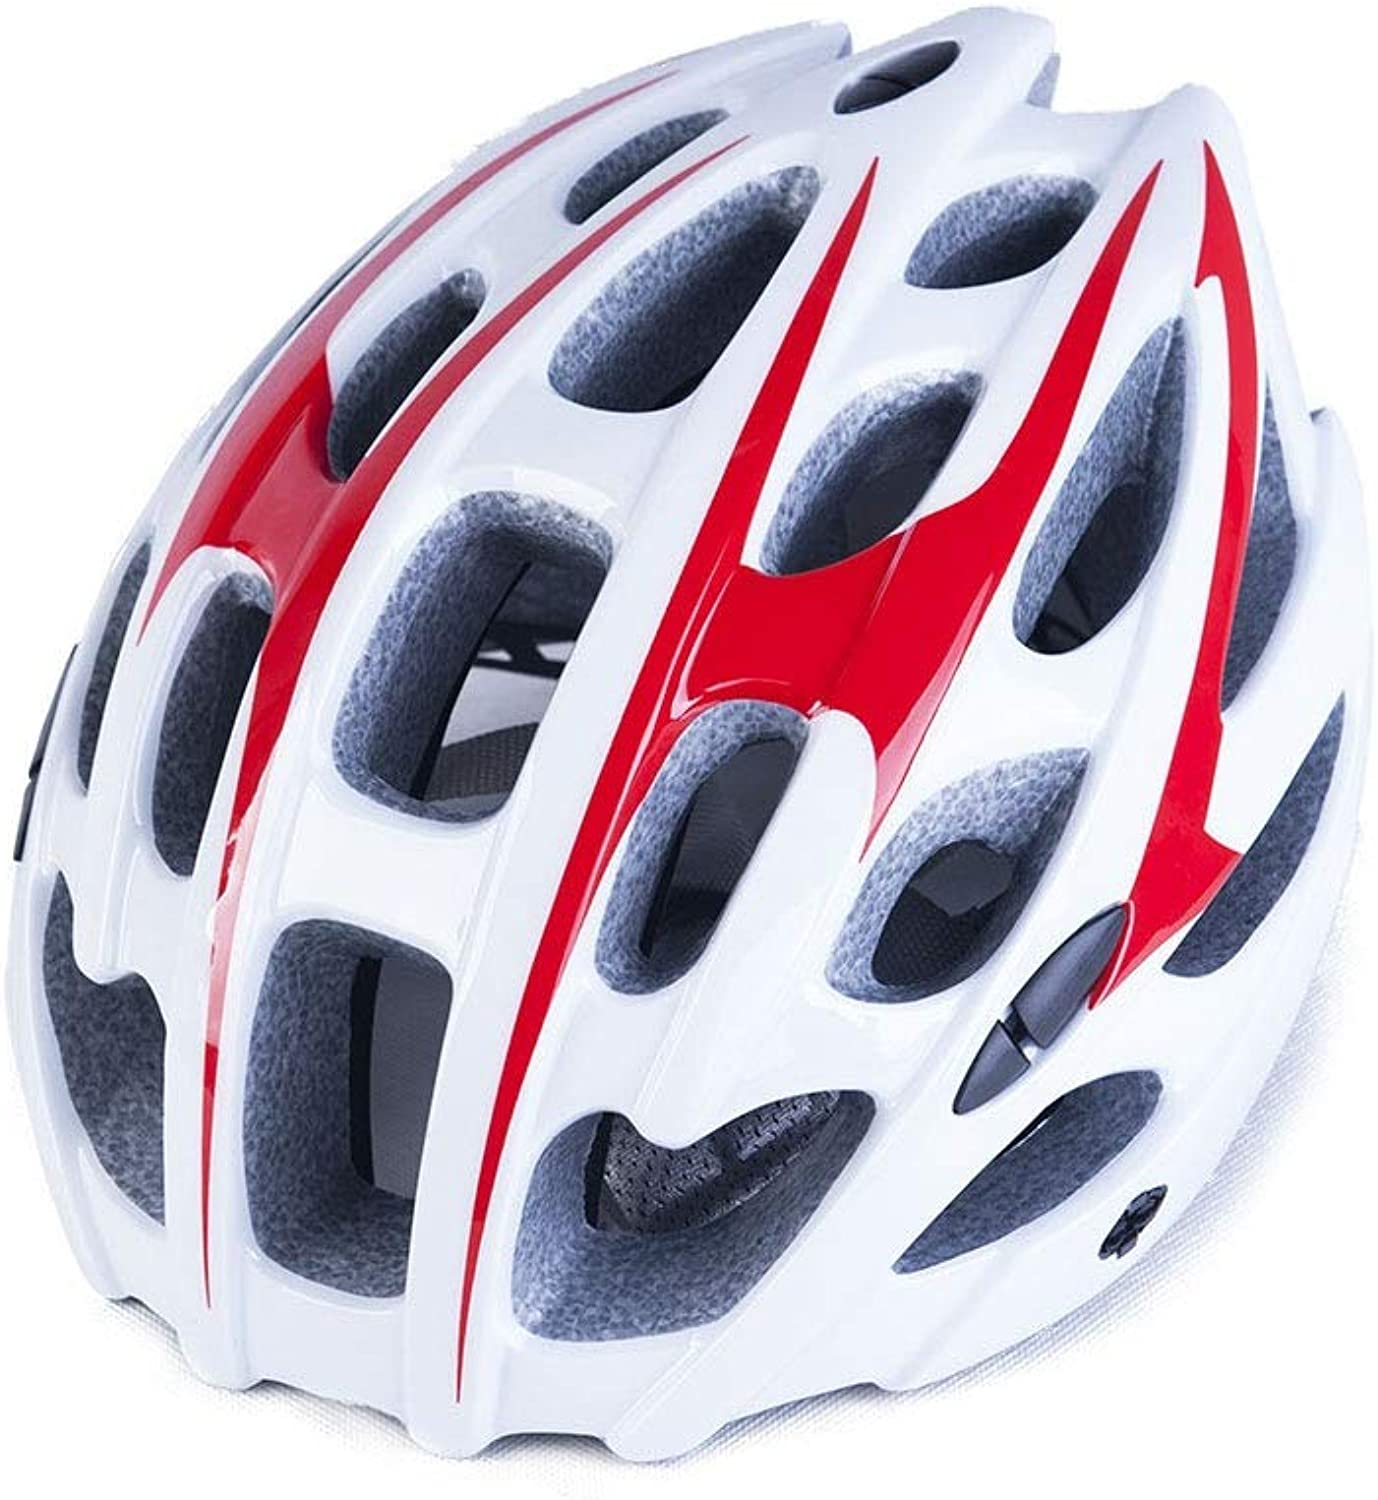 Bicycle Helmet, Red and White Visor Road Mountain Bike Cycle Riding Adjustable Adult Lightweight Helmet